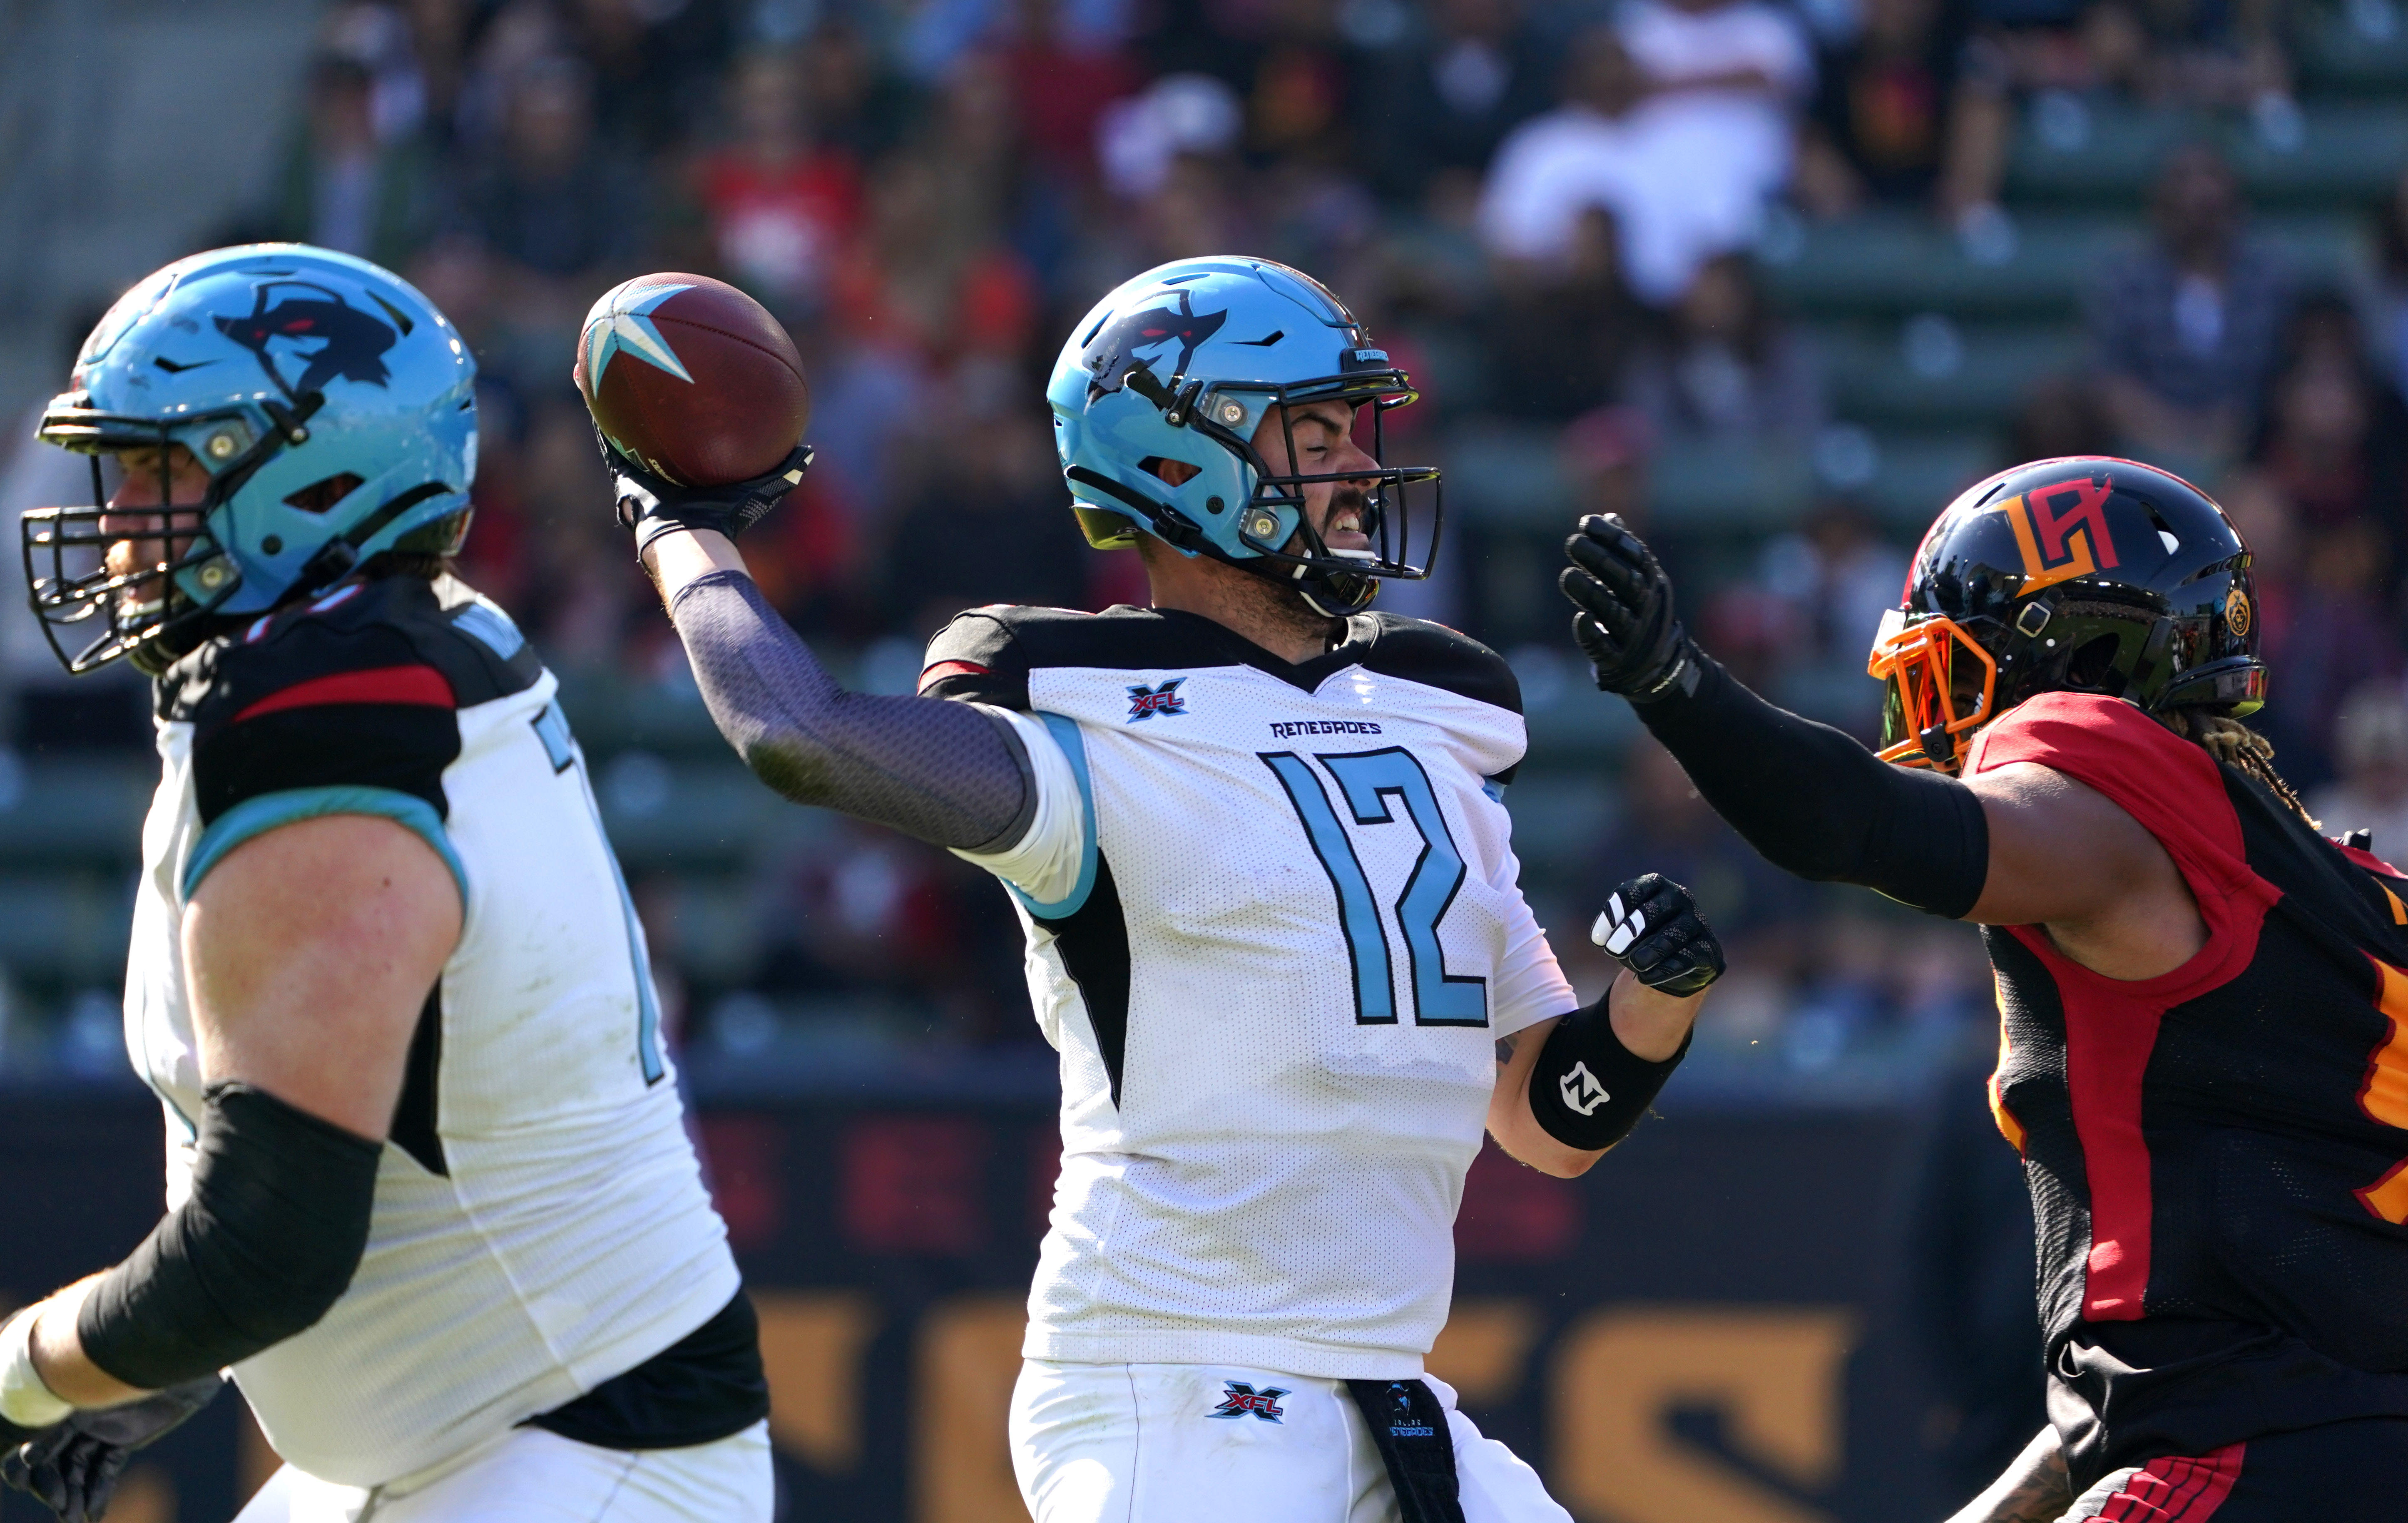 Dallas Renegades quarterback Landry Jones throws the ball under pressure from LA Wildcats linebacker Willie Mays in the fourth quarter at Dignity Health Sports Park.